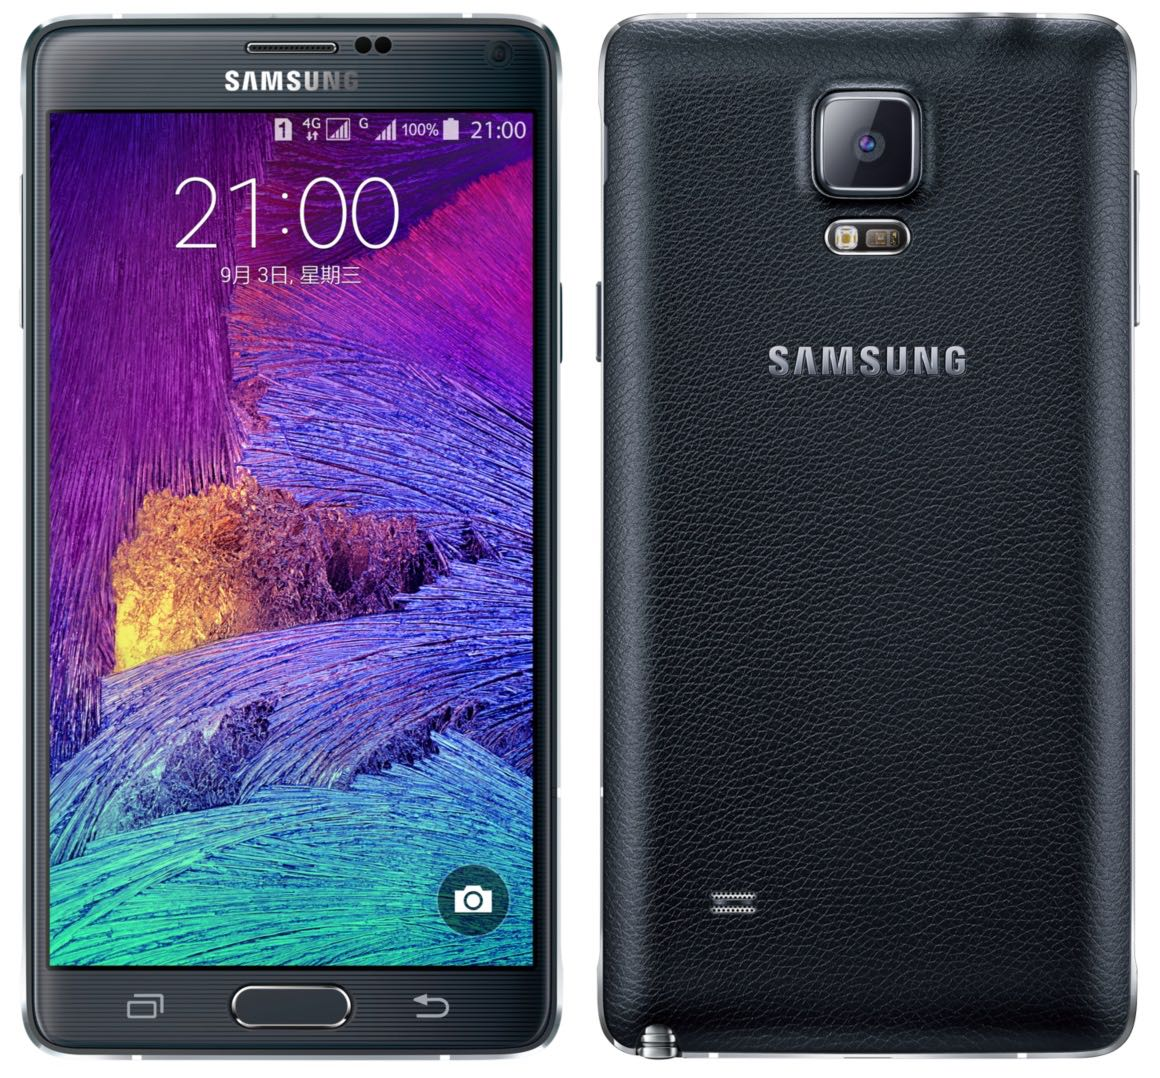 Samsung Galaxy Note 4 Buy Shop Amazon 5